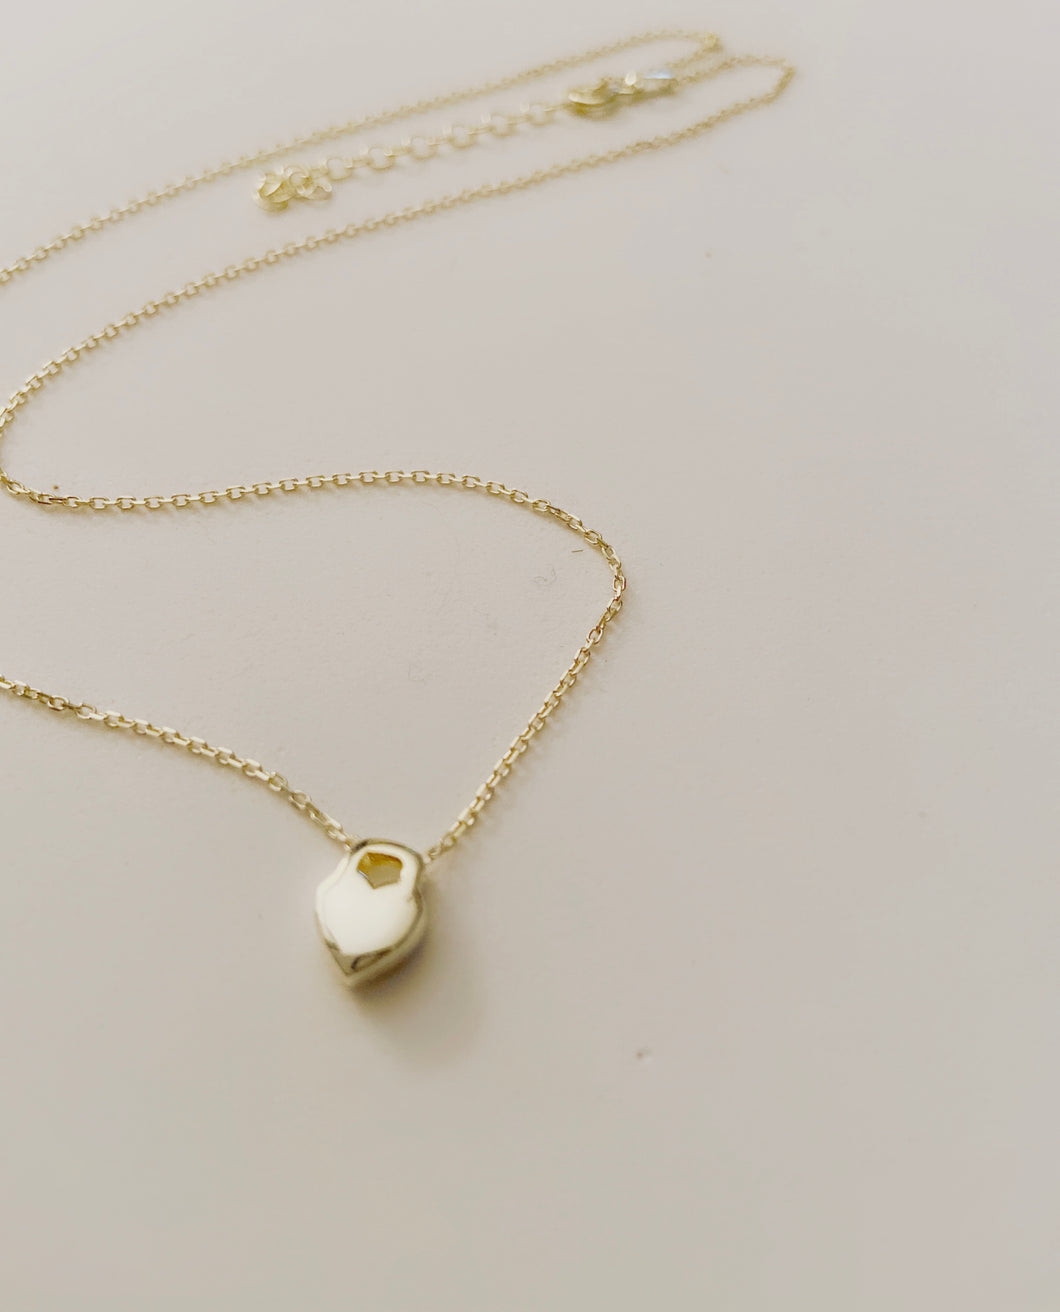 Tiny Heart Lock Necklace